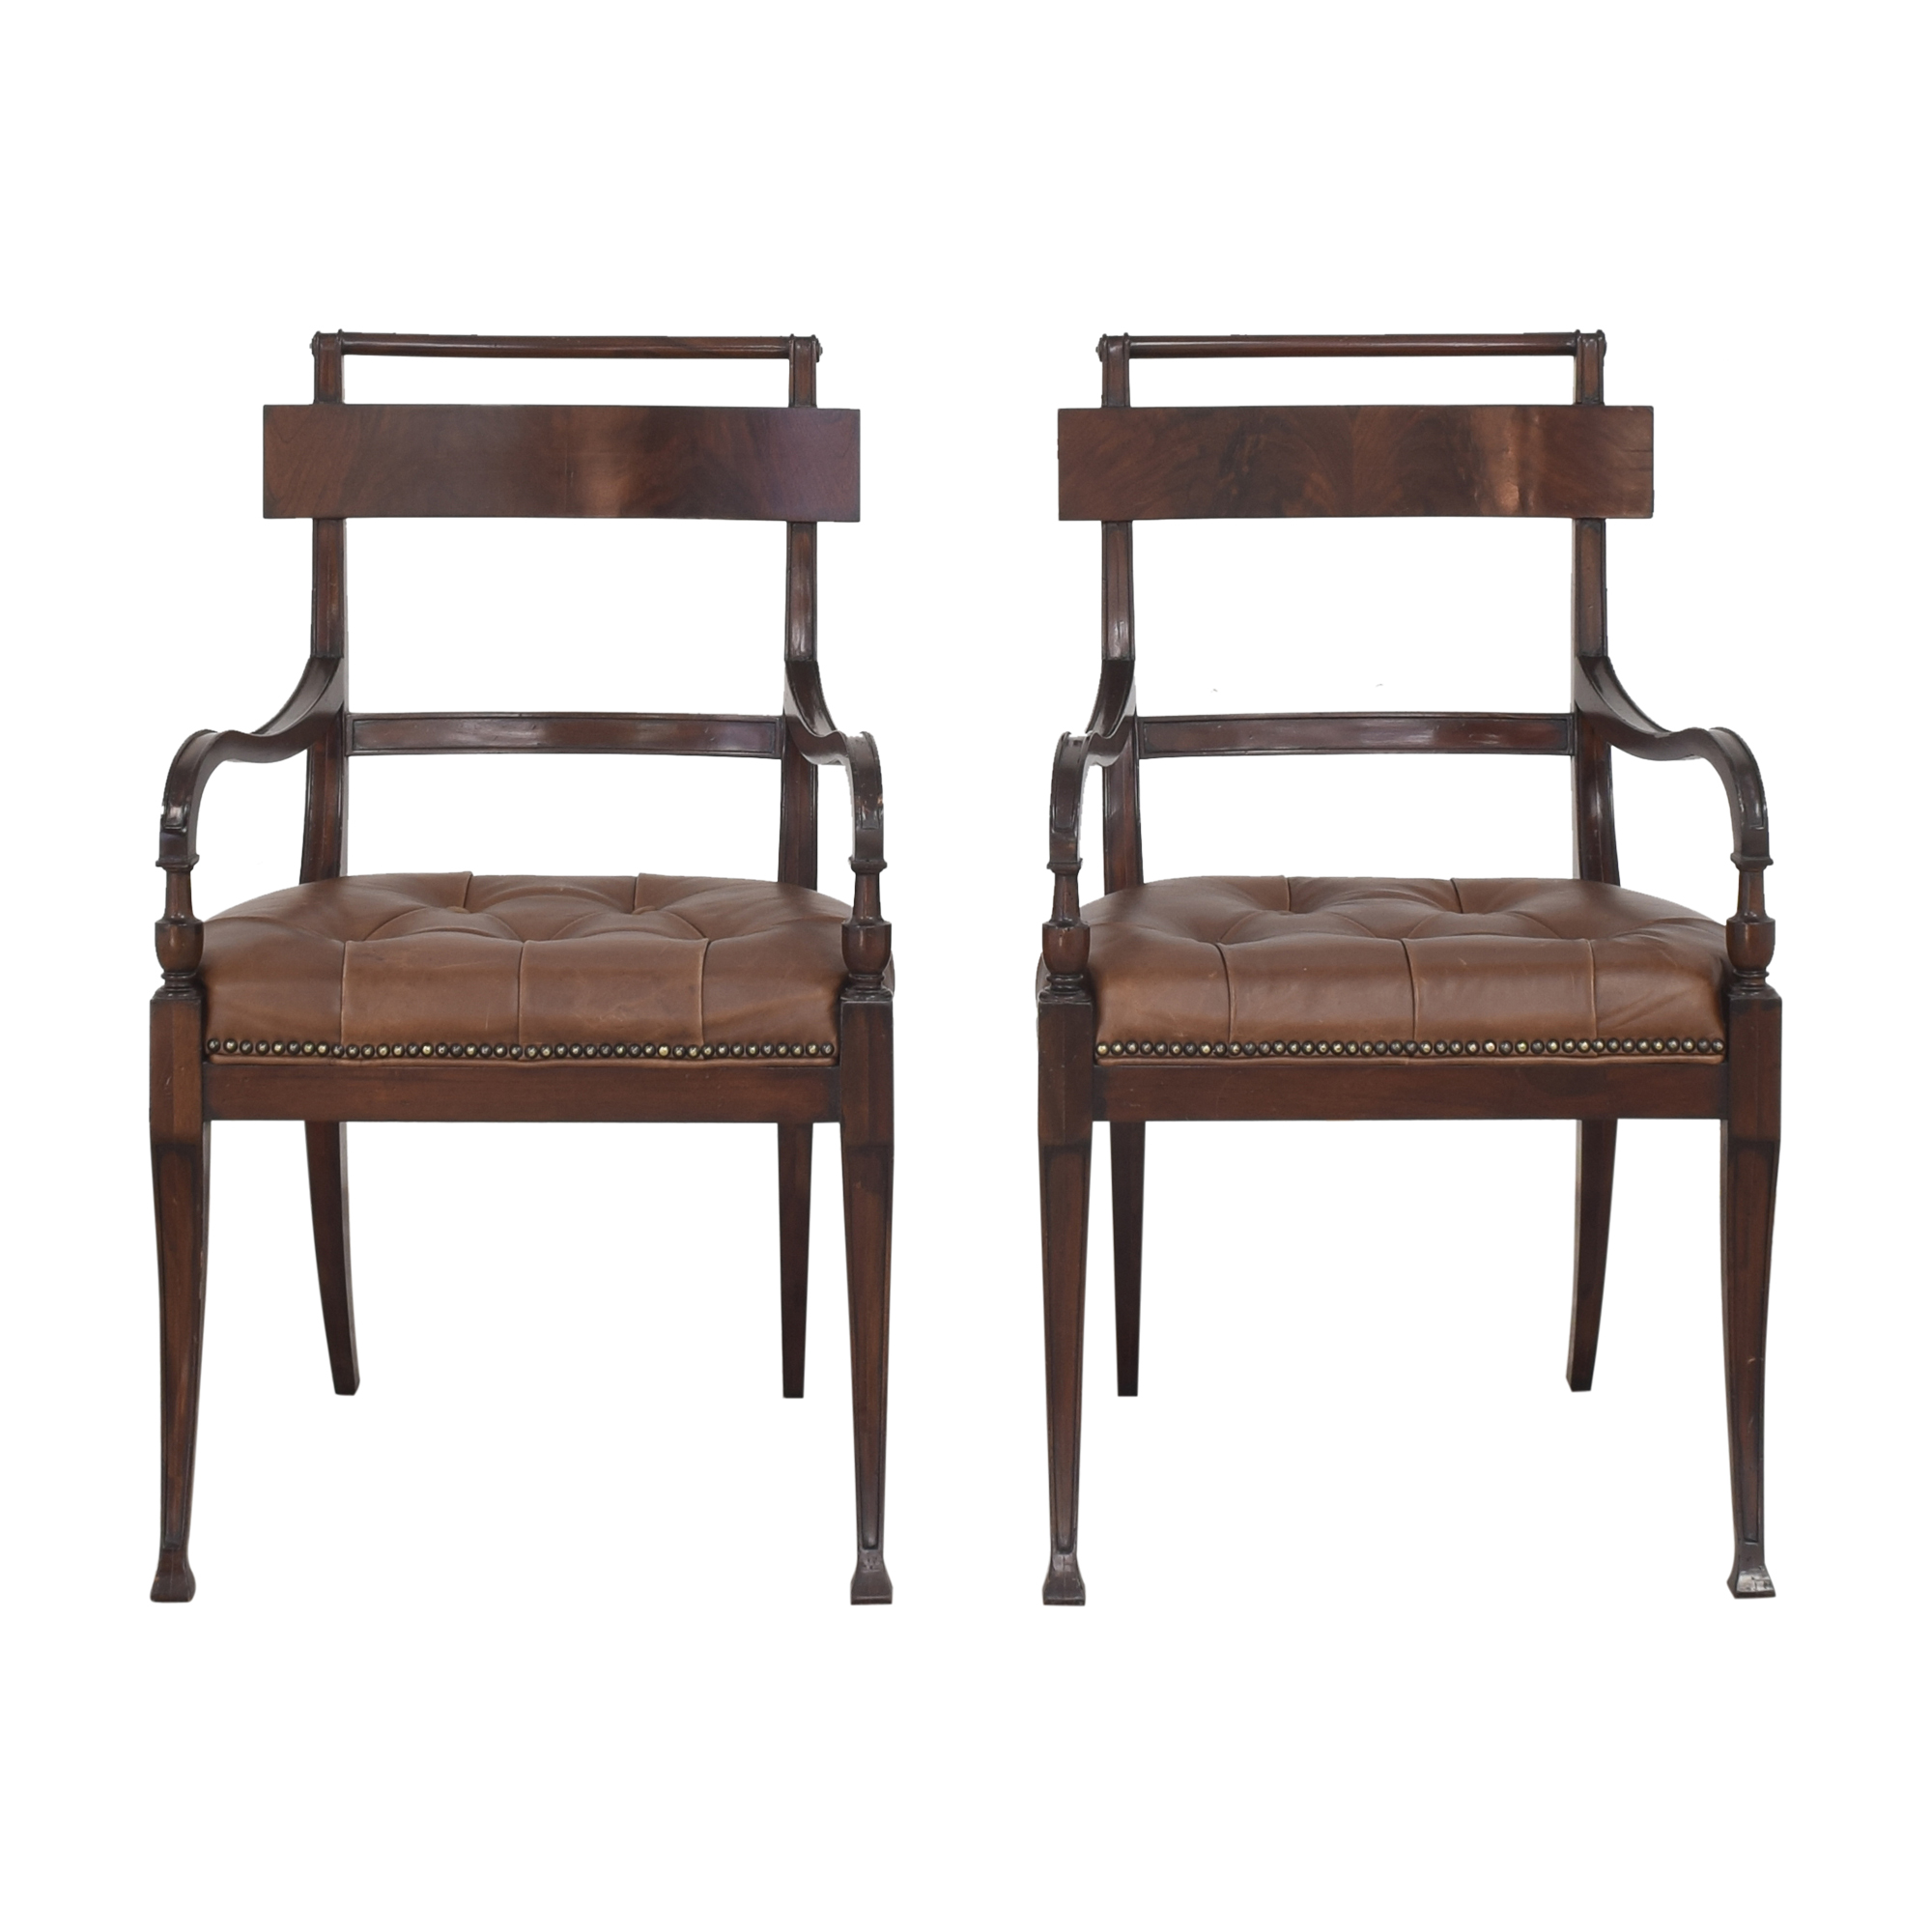 Henredon Furniture Henredon Furniture Acquisitions Dining Arm Chairs Dining Chairs